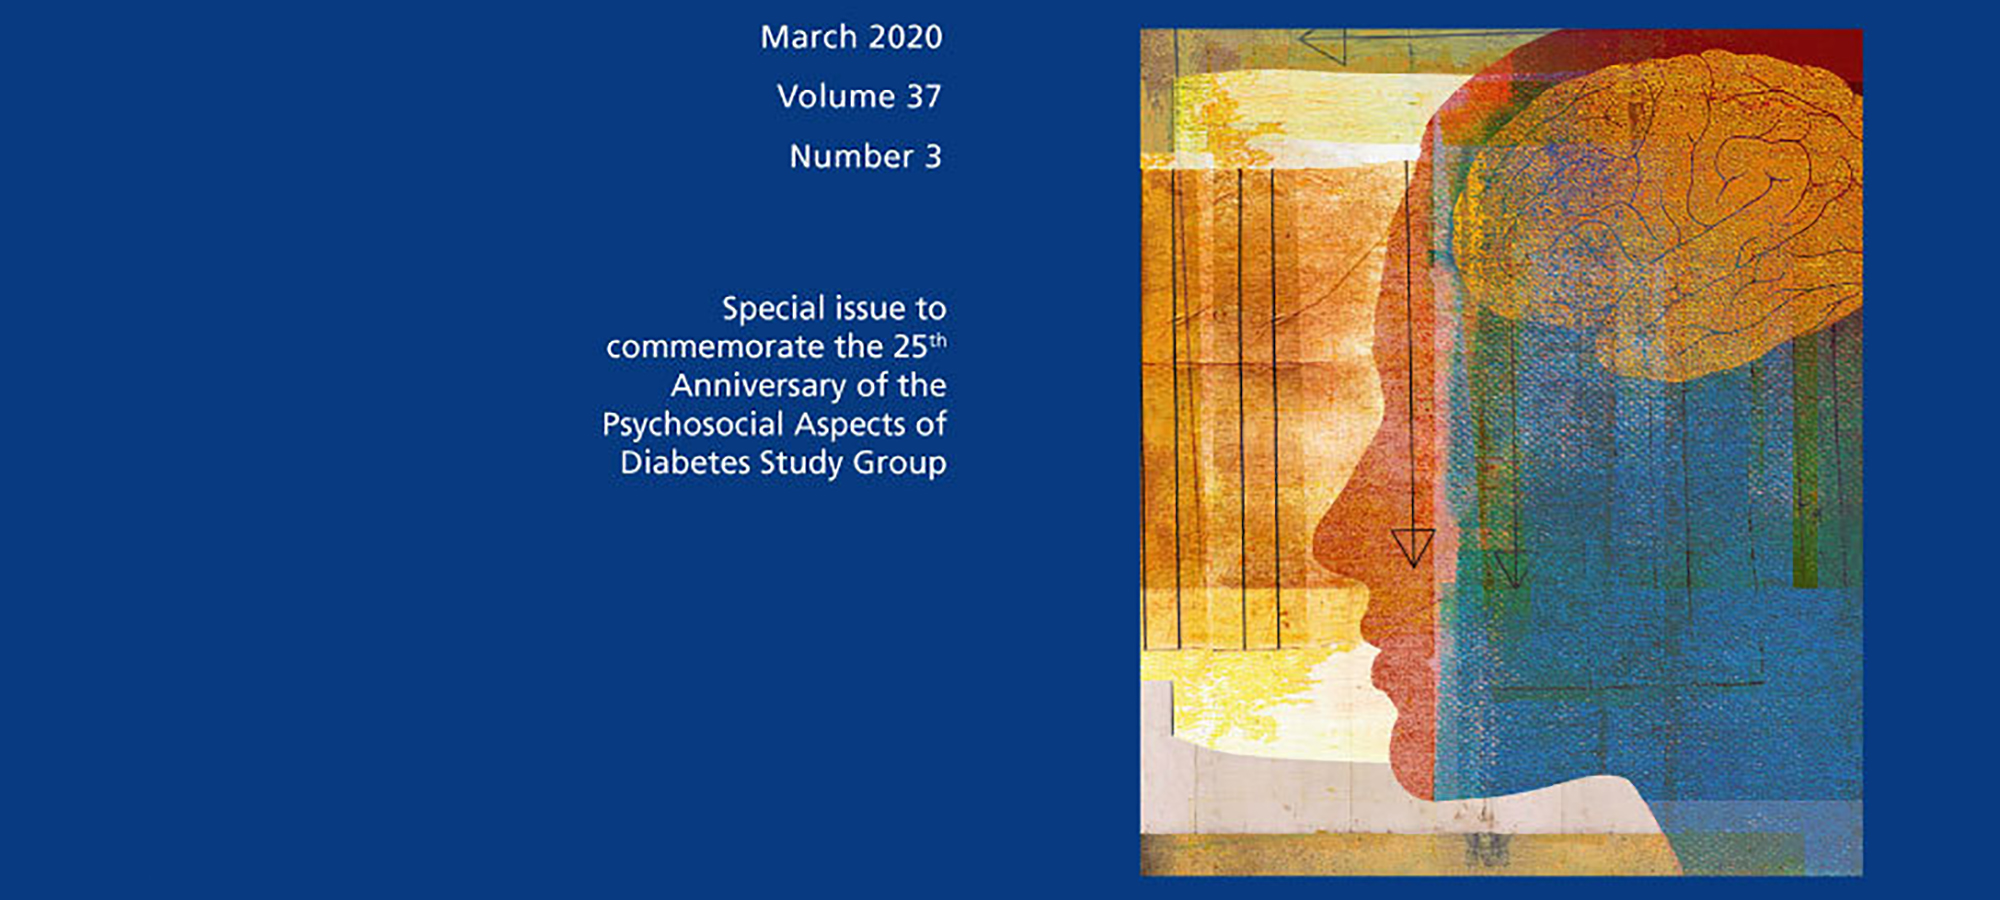 ACBRD helps to celebrate an impactful 25 years of the PsychoSocial Aspects of Diabetes (PSAD) Study Group